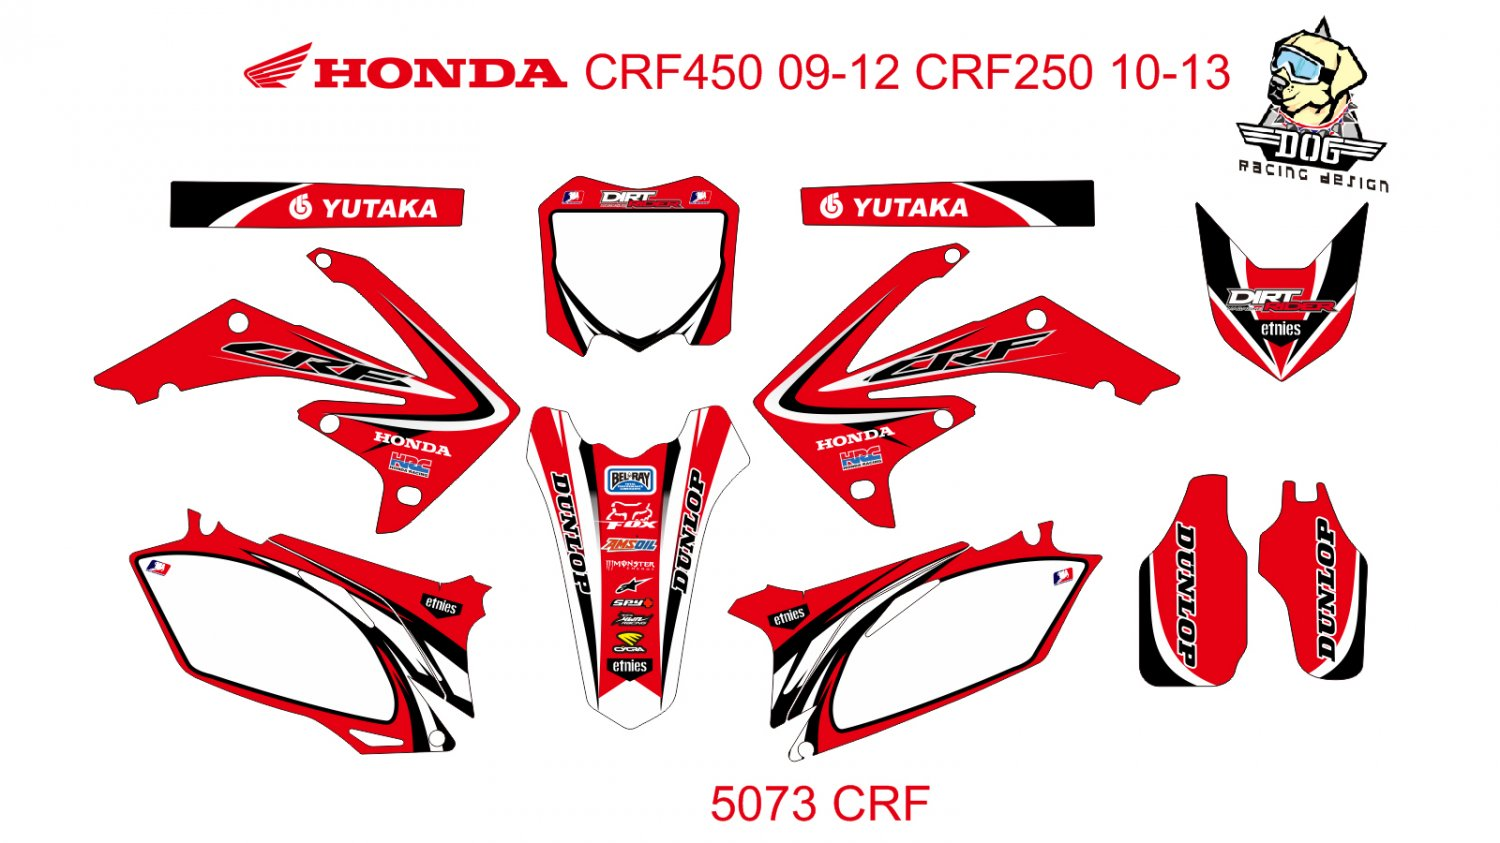 HONDA CRF 450 2009-2012 CRF 250 2010-2013 GRAPHIC DECAL KIT CODE.5073